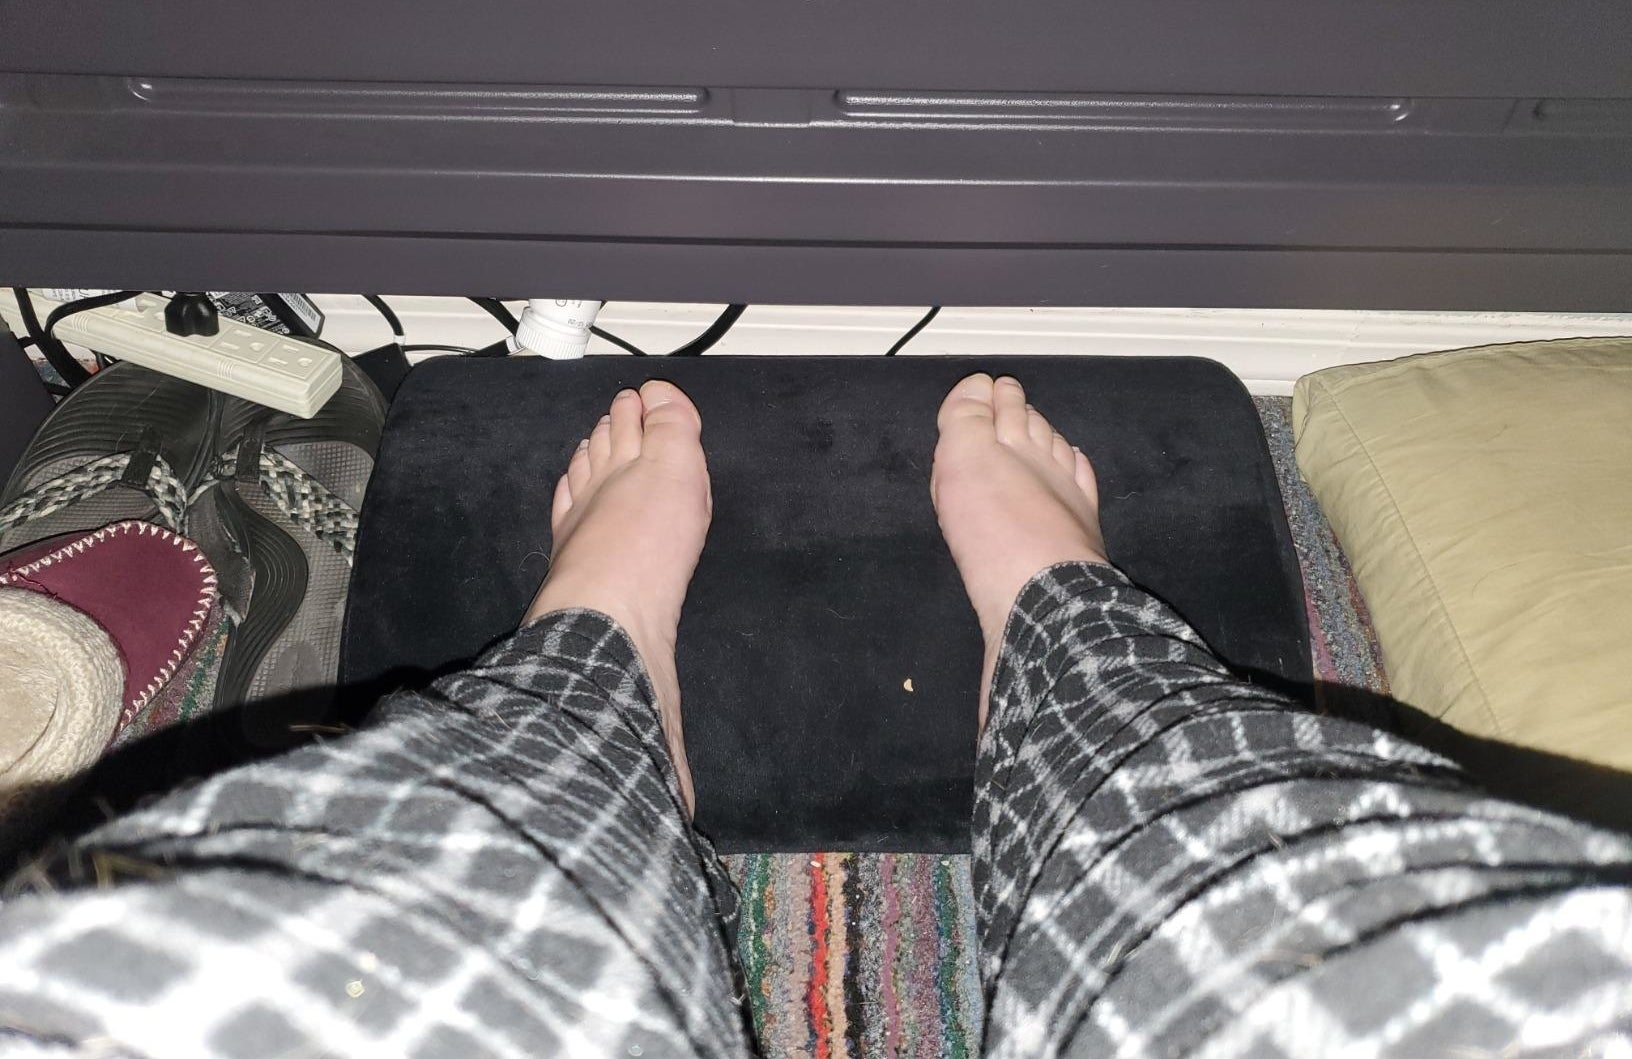 reviewer's feet on the foot rest